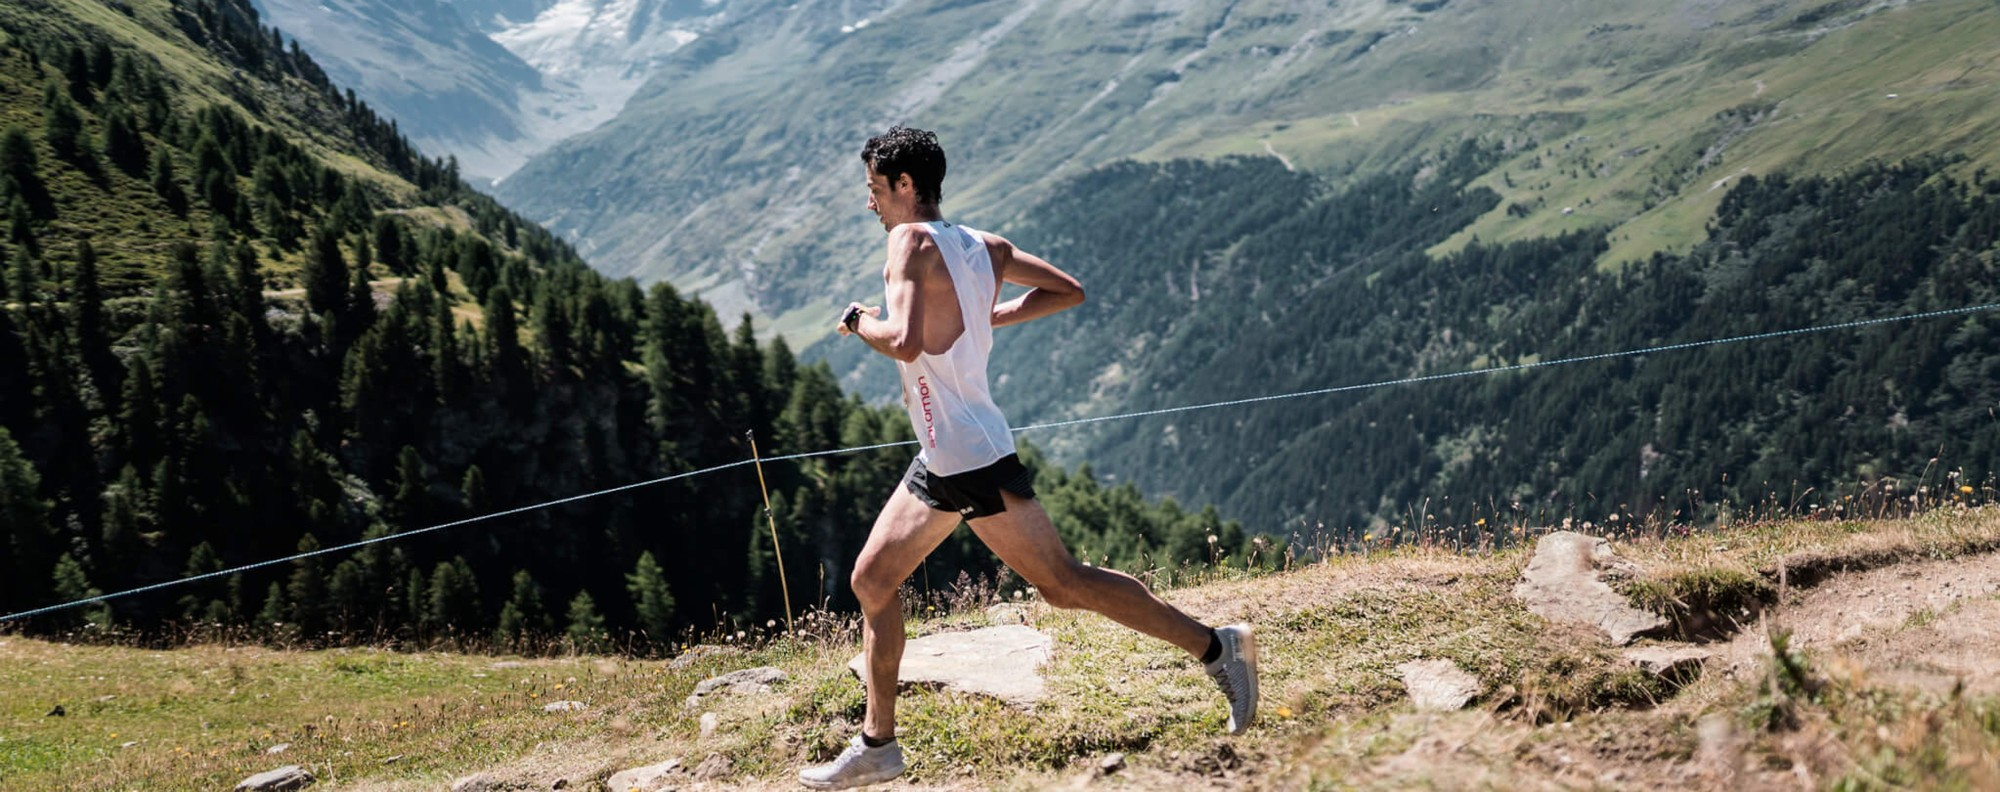 A young Kilian Jornet burst onto the trail scene and his rise is captured in 'Unbreakable'. Photo: Golden Trail Series